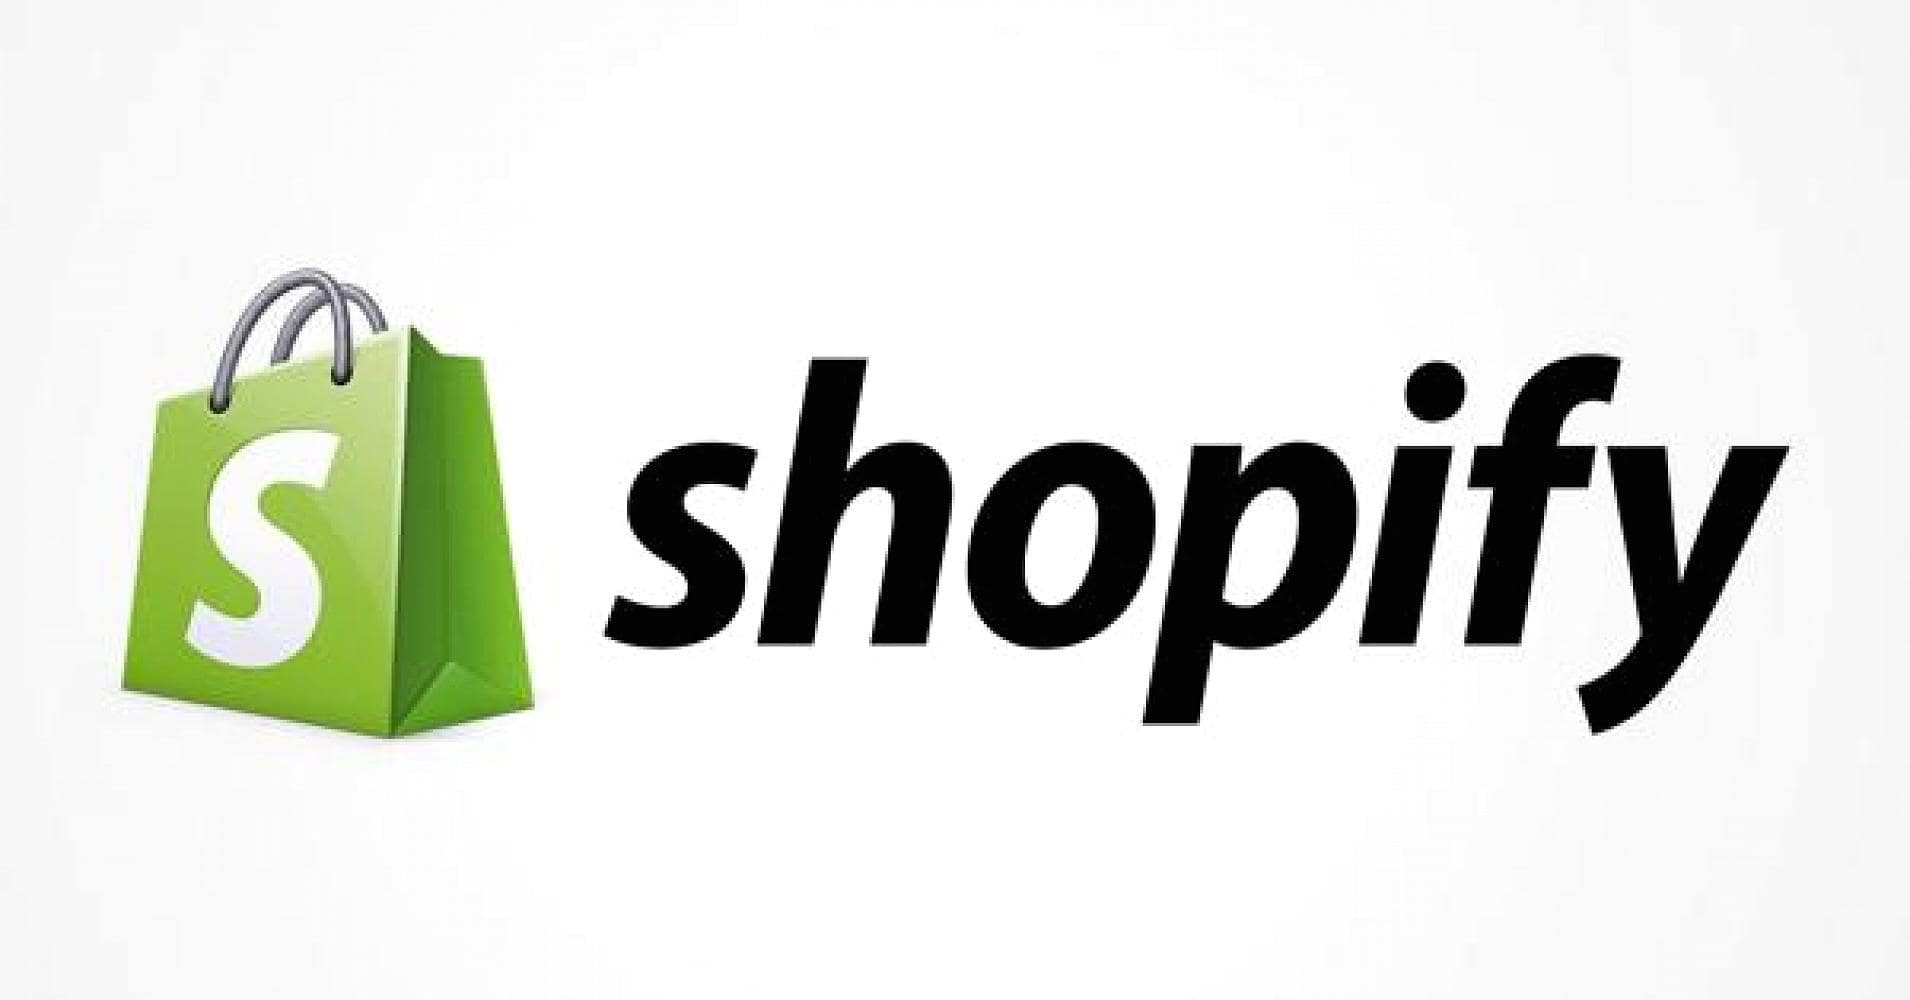 Shopify ecommerce technology platforms allows retailers to add many useful features with the integration of add-ons